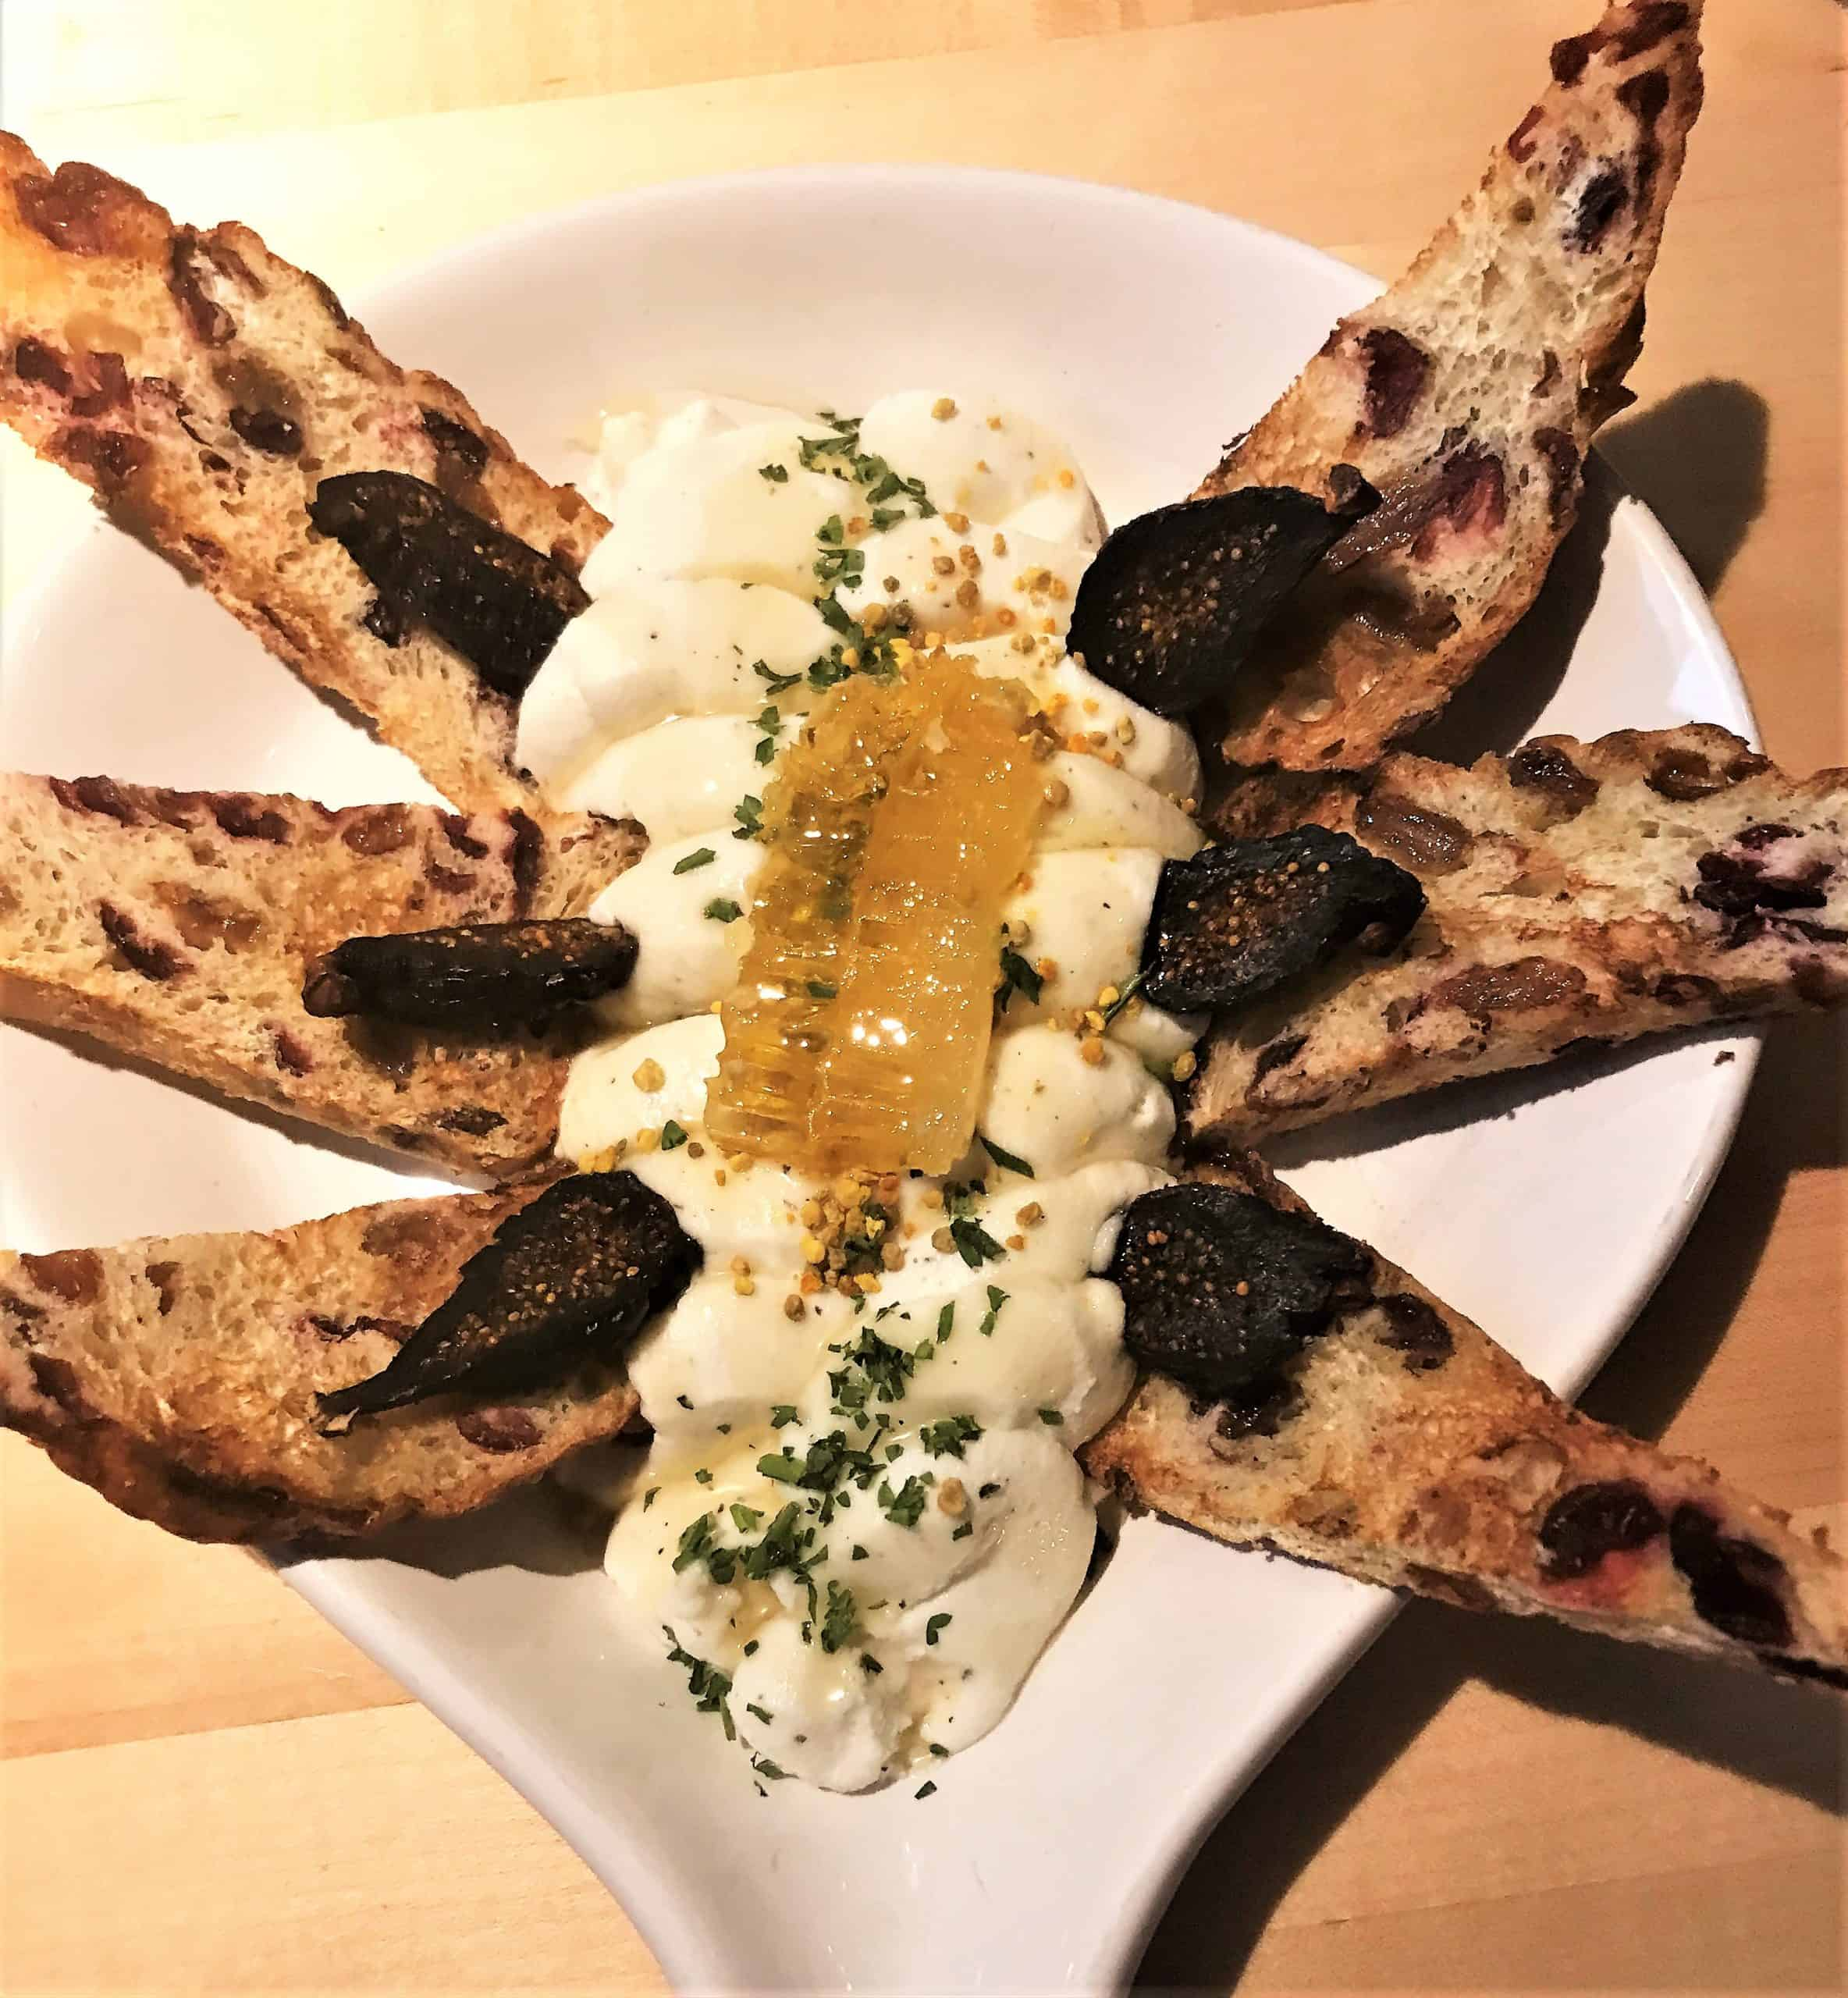 A ricotta cheese spread starter at Mootz in Detroit, Michigan